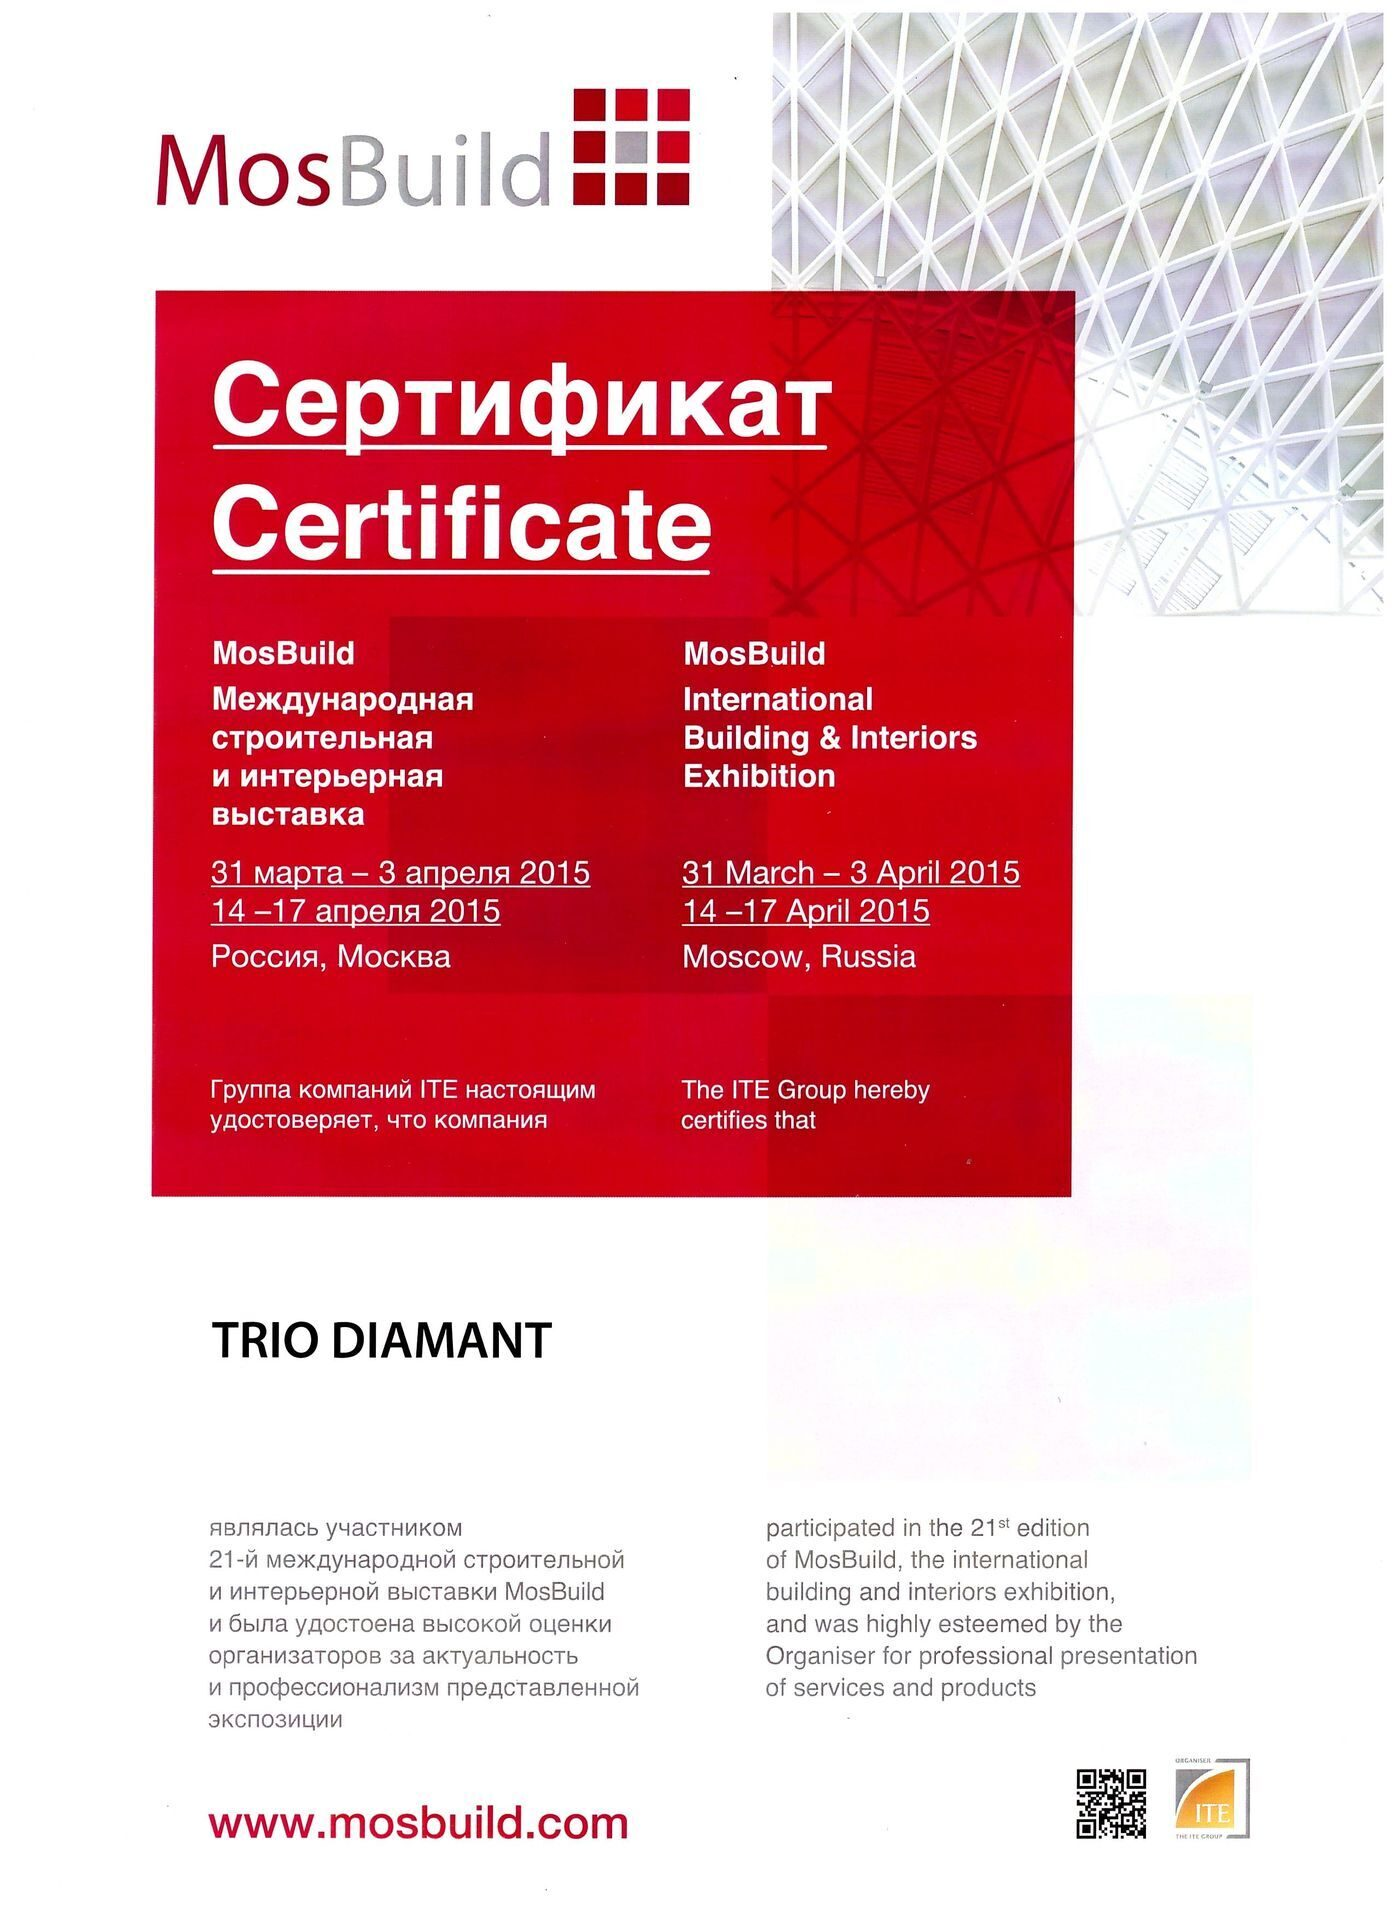 Trio Diamond MosBuild 15